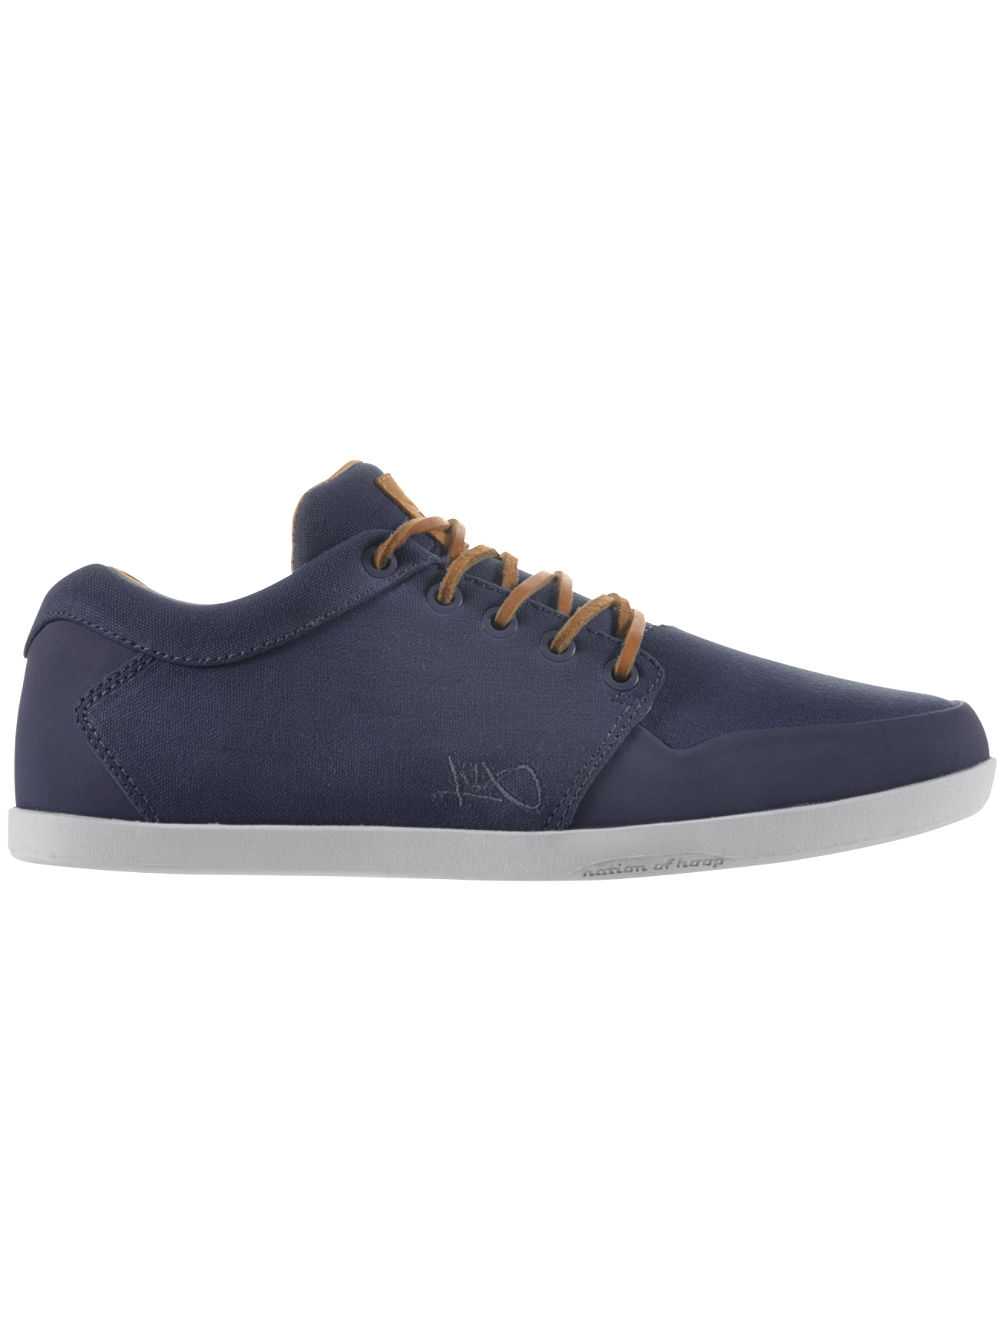 LP Low SP Sneakers